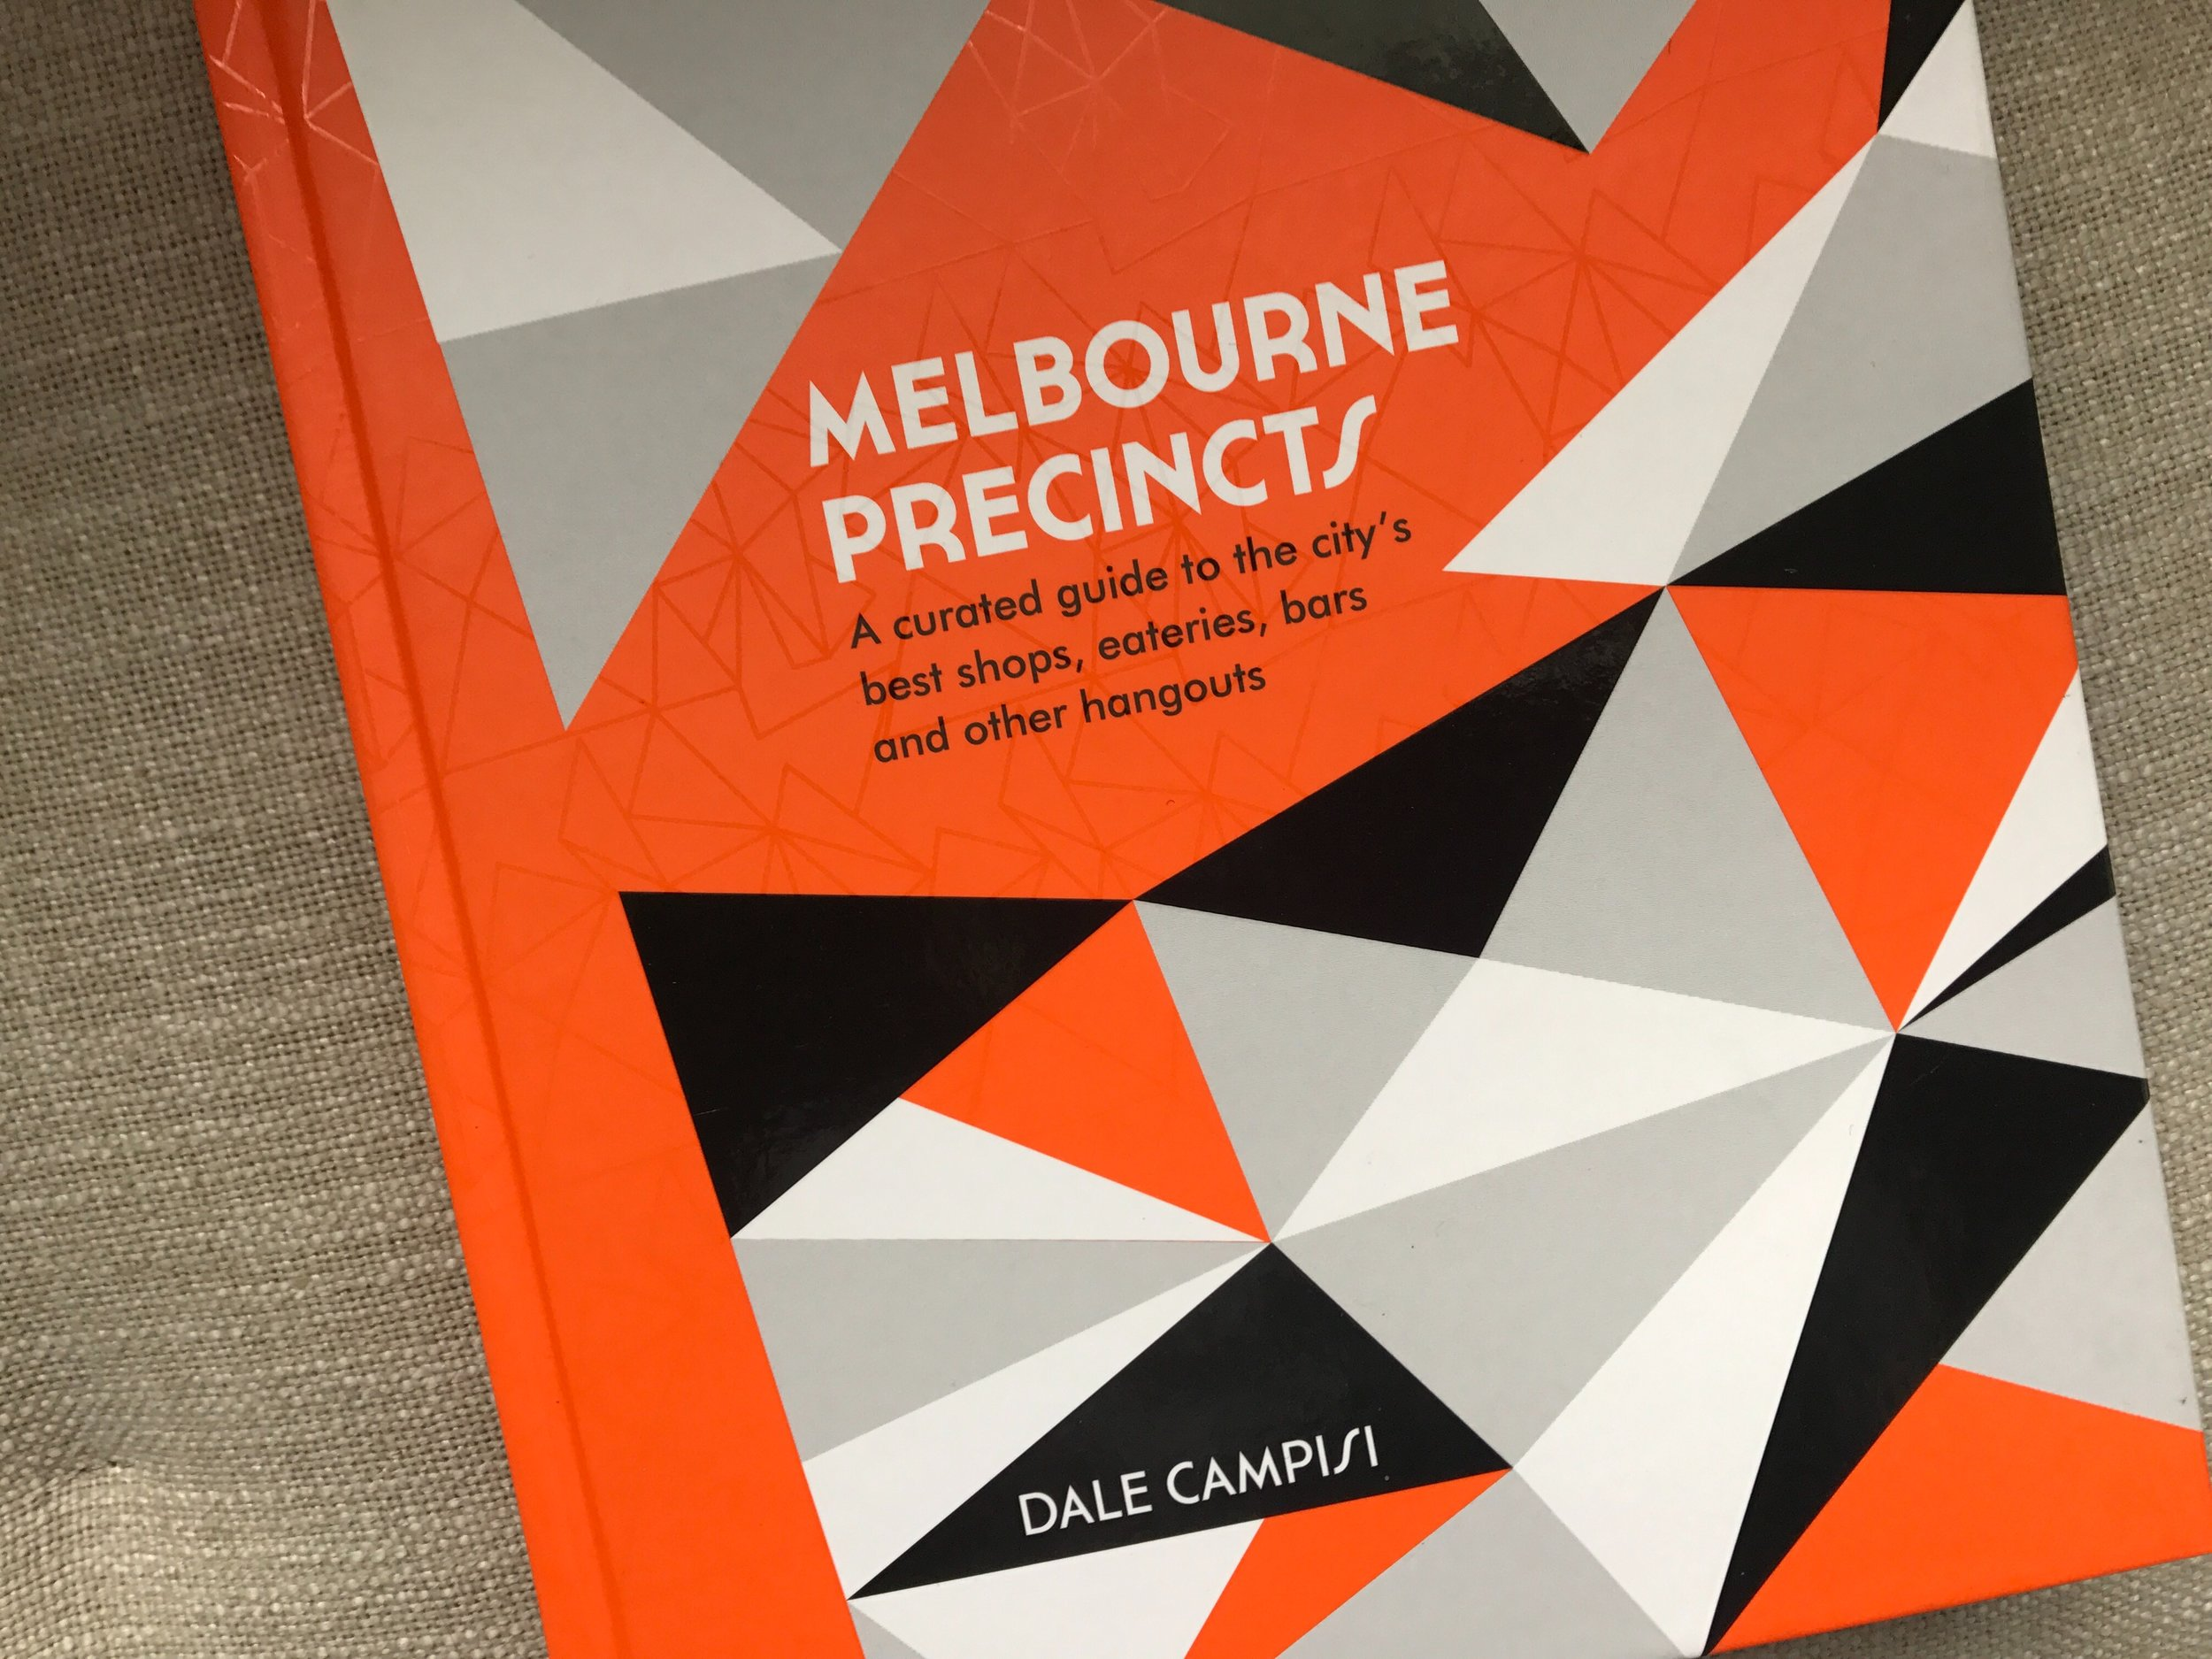 Melbourne Precincts book by Dale Campisi. Photo by The Doubtful Traveller